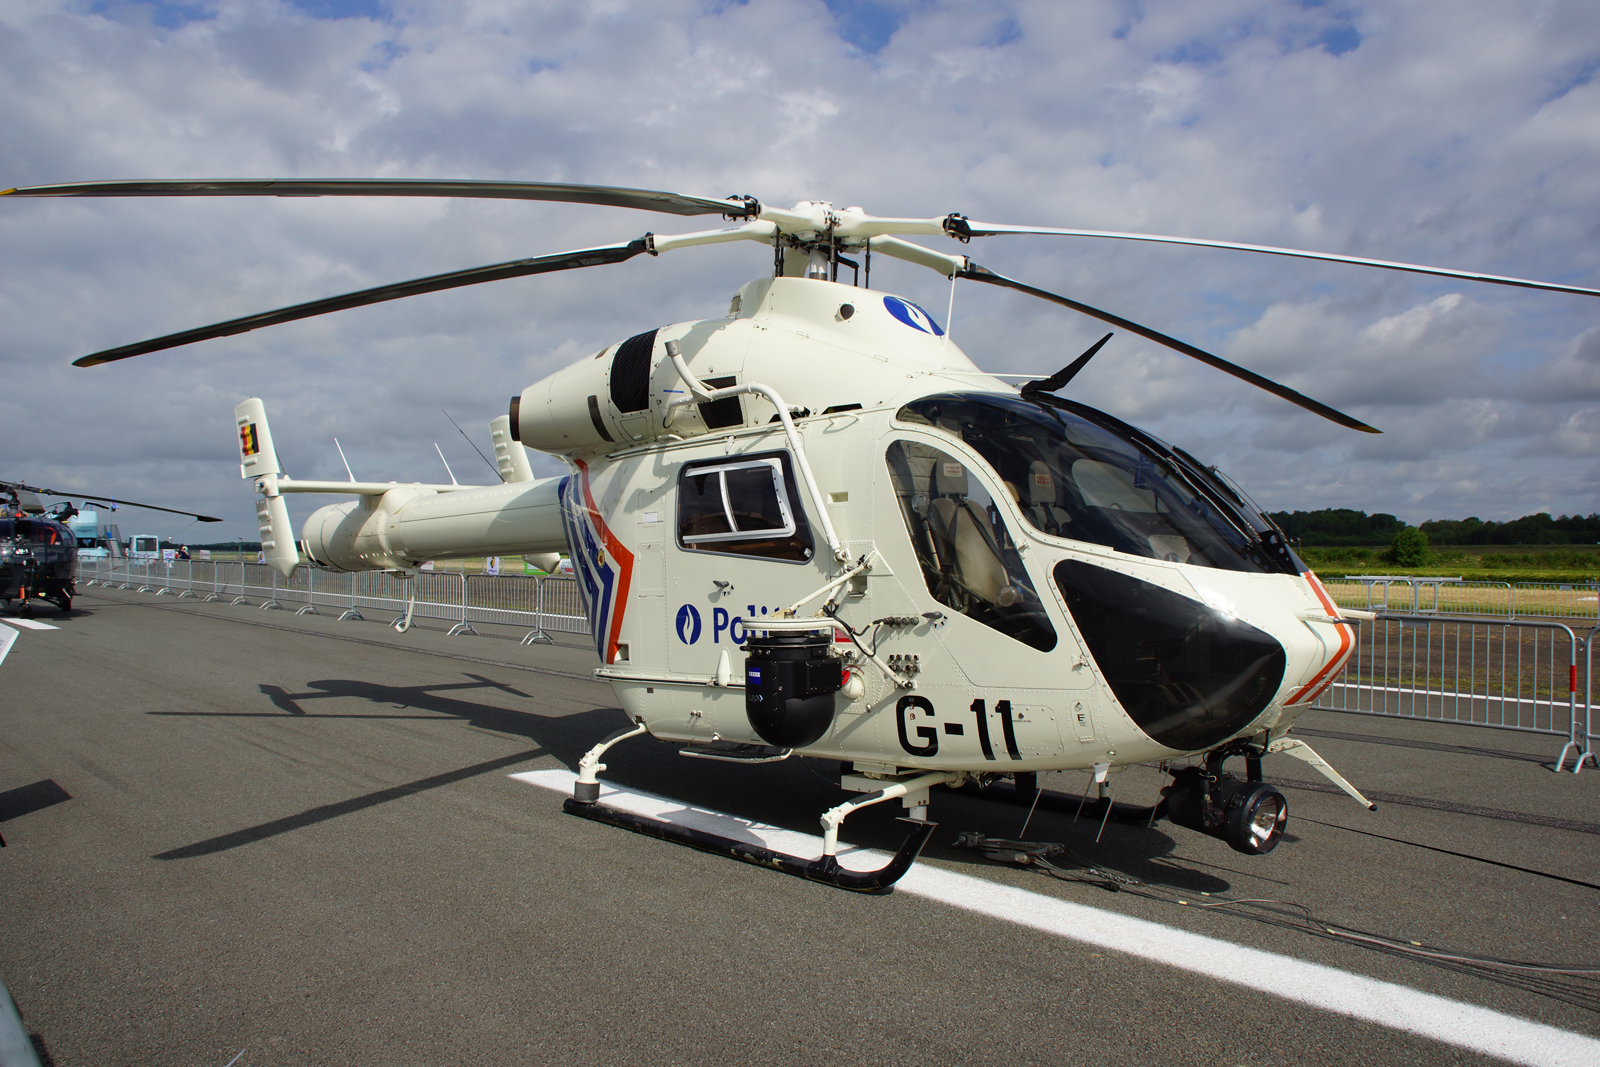 md helicopters 500 with Md Helicopters Md 900902 Explorer on File notar helicopter further Top  E7 9B B4 E5 8D 87 E9 A3 9E E6 9C BA E6 A8 A1 E5 9E 8B E4 B8 89 E8 A7 86 E5 9B BE likewise File Hughes500 g Gspg arp moreover Avh6 furthermore Philippine Air Force To Receive Aw 109e Helicopters By End Of 2015.